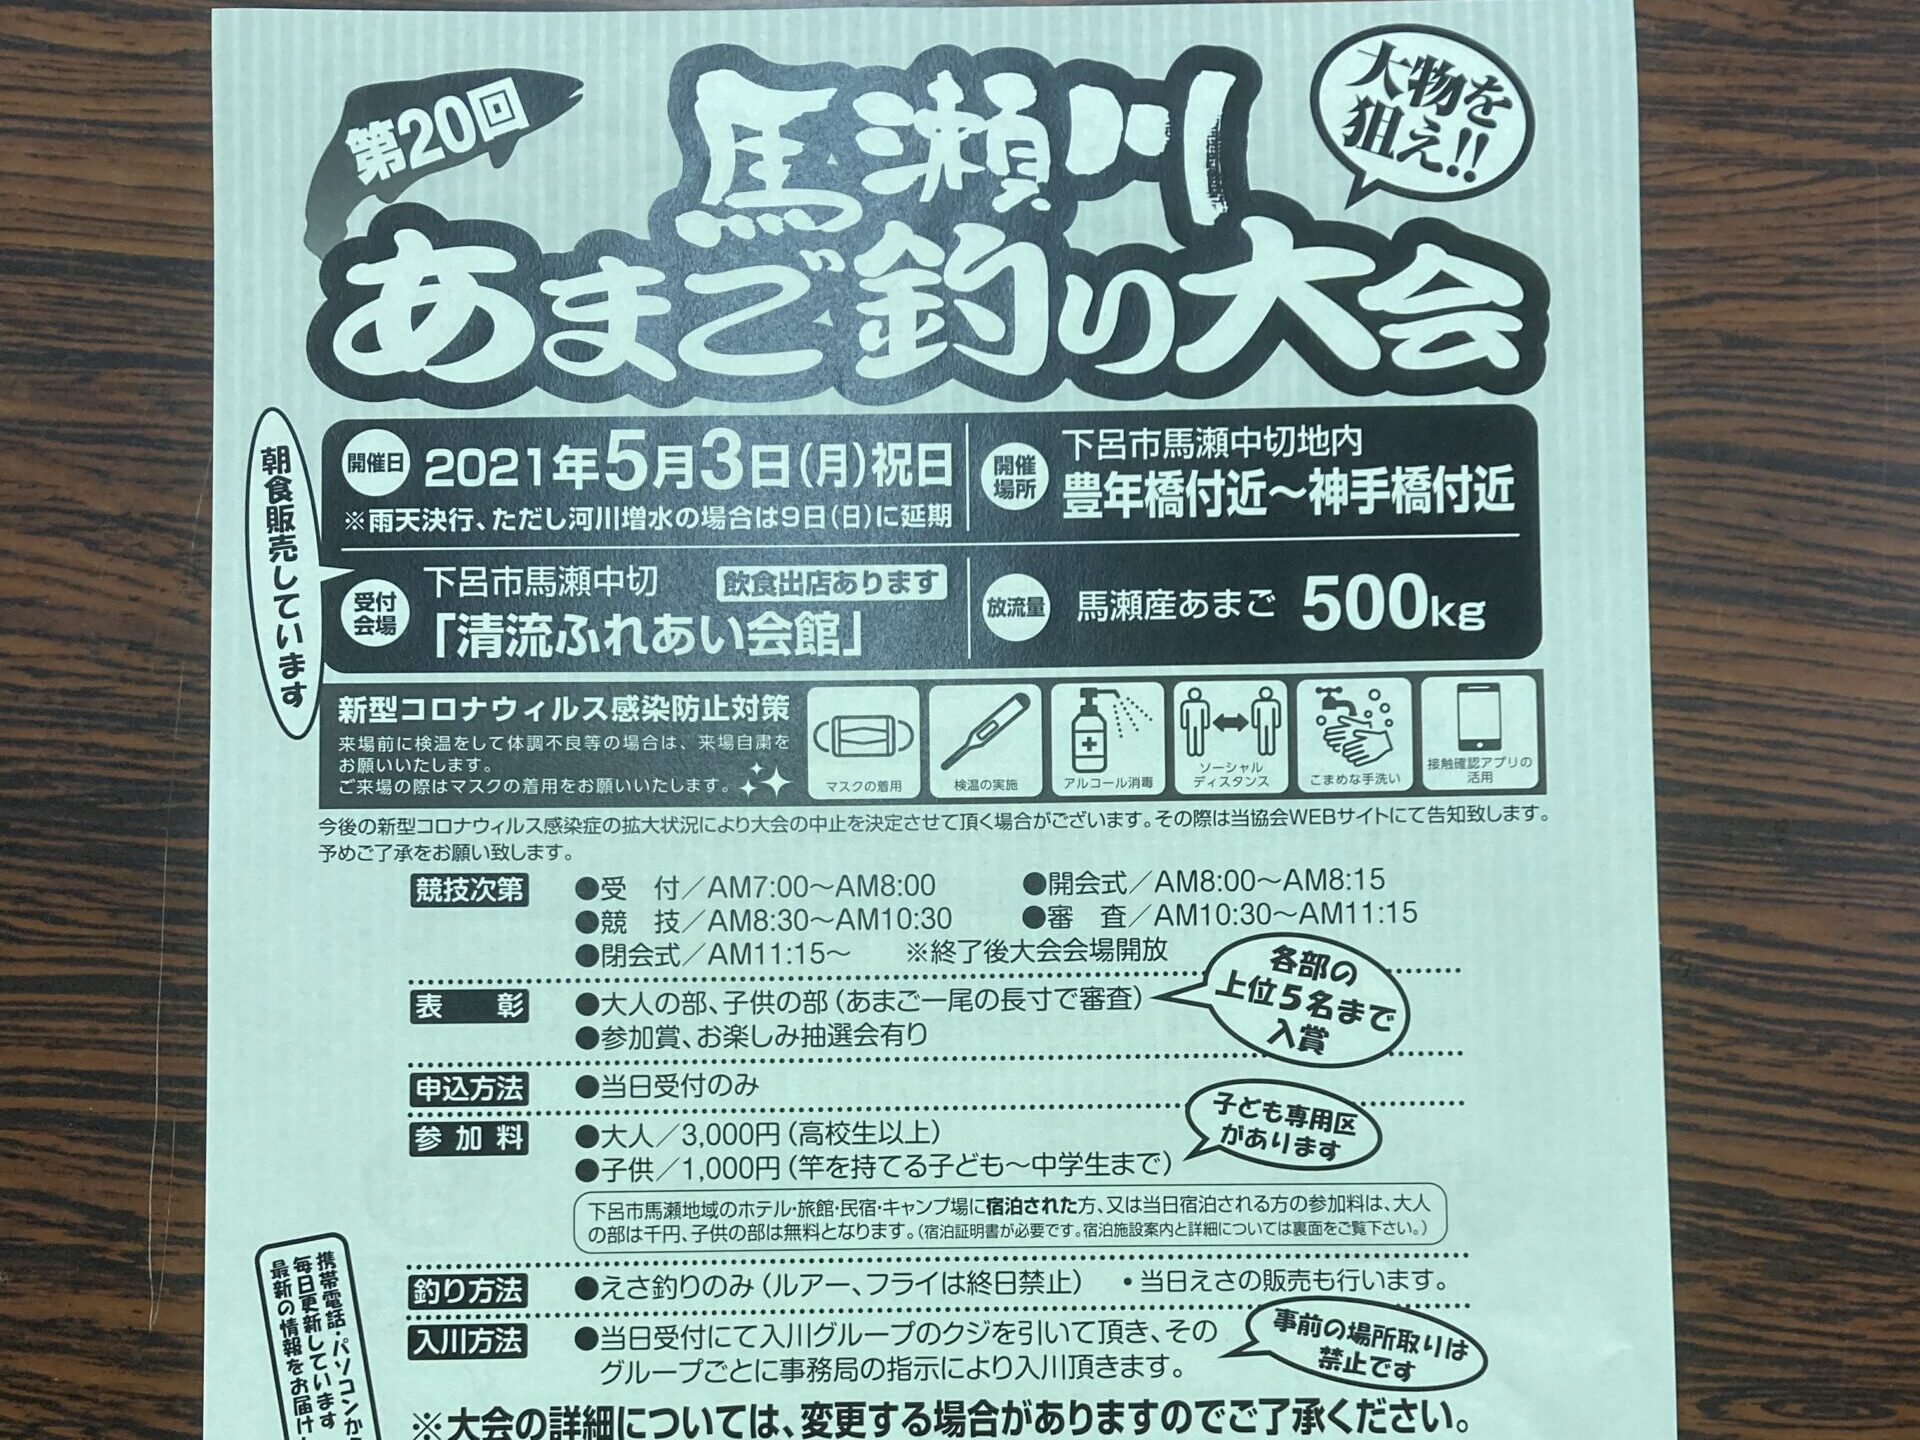 You are currently viewing 2021年馬瀬川あまご釣り大会開催予定